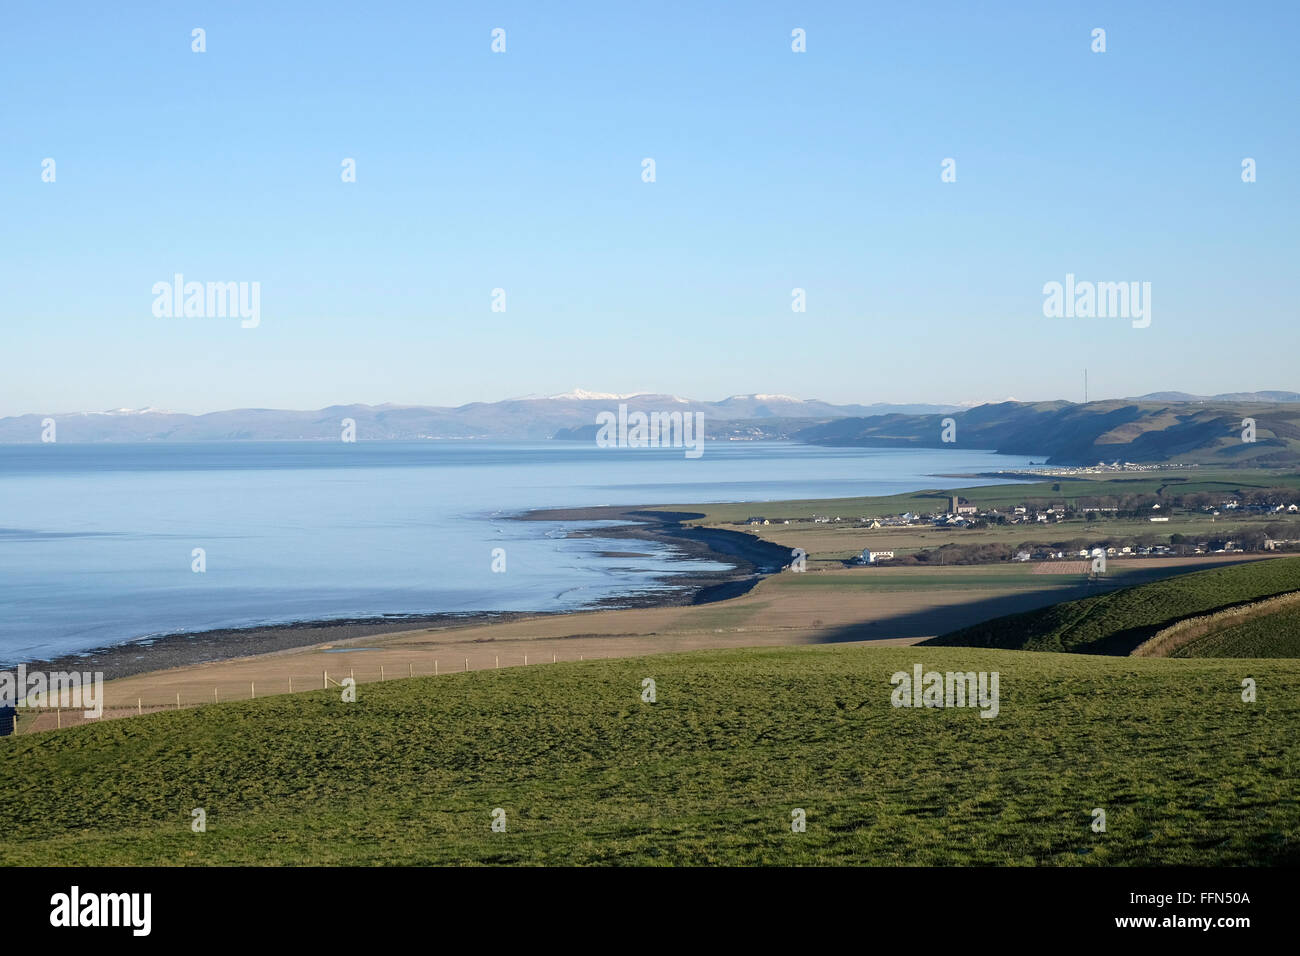 View of West Wales Coast, Cardigan Bay, showing Llanon, Llanrhystud and Beyond.  Cader Idris on the distant skyline. - Stock Image